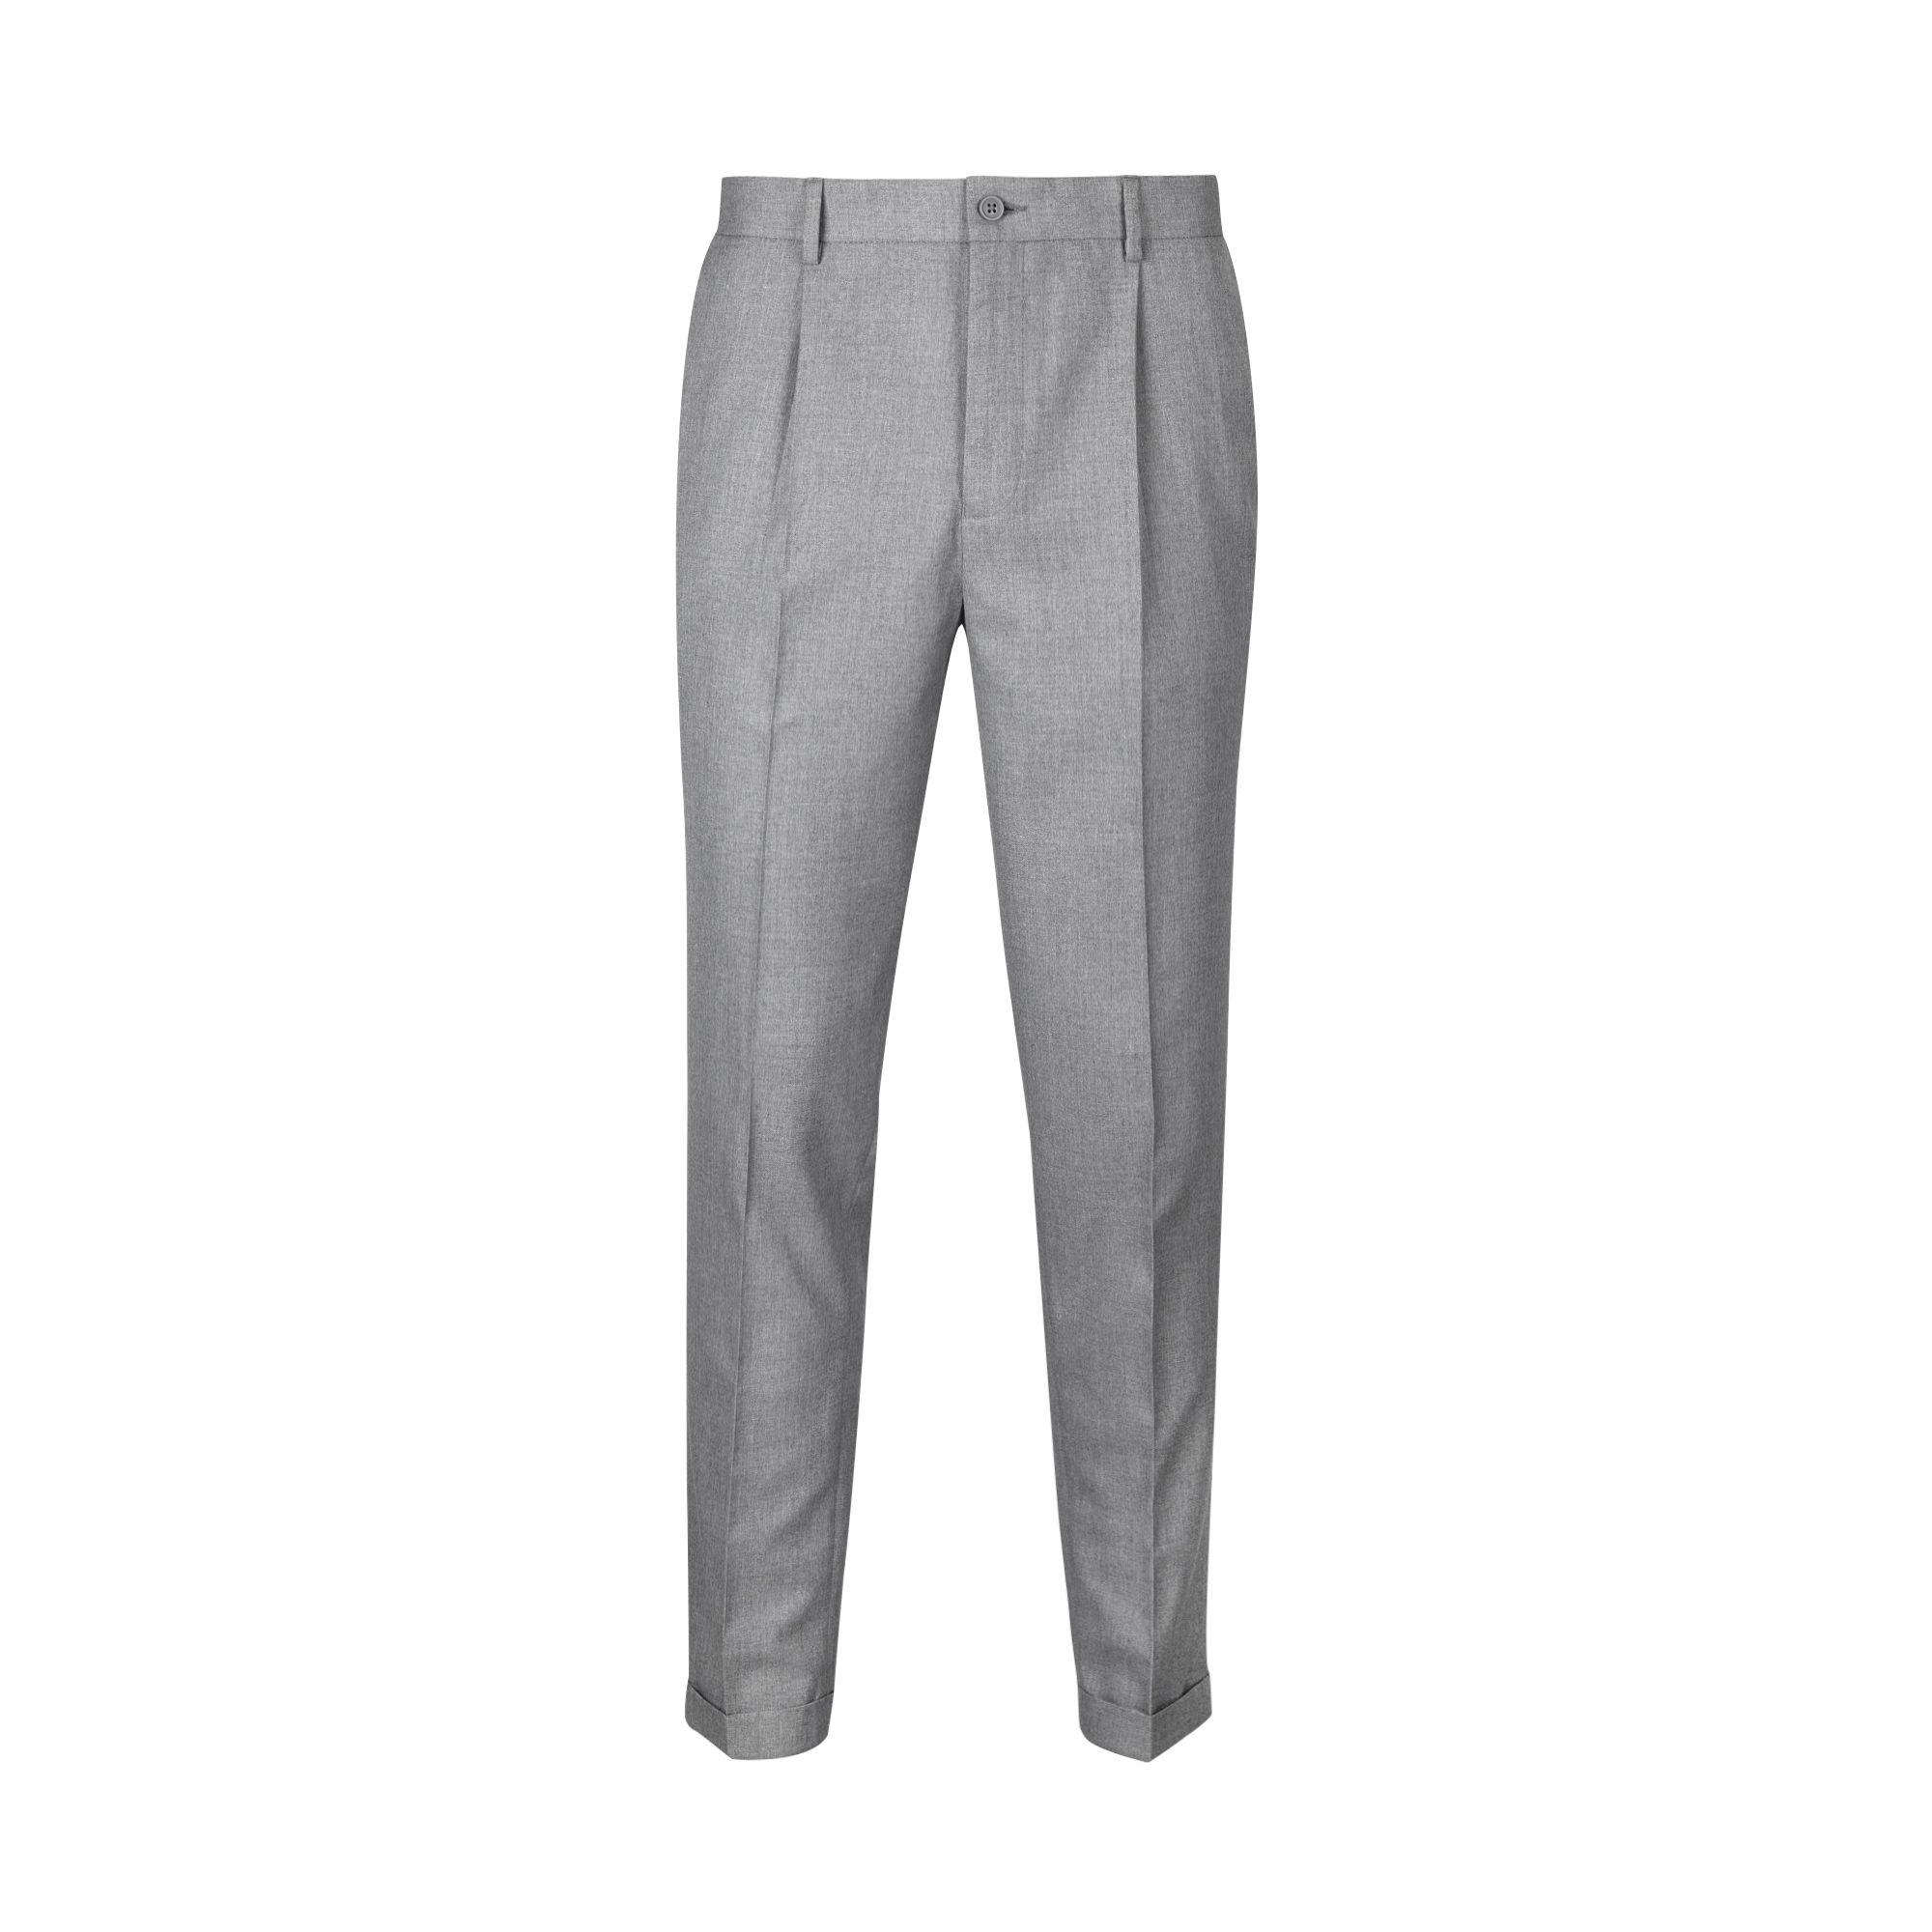 Burton Grey Tapered Fit Pleat Side Zip Trousers in Grey for Men